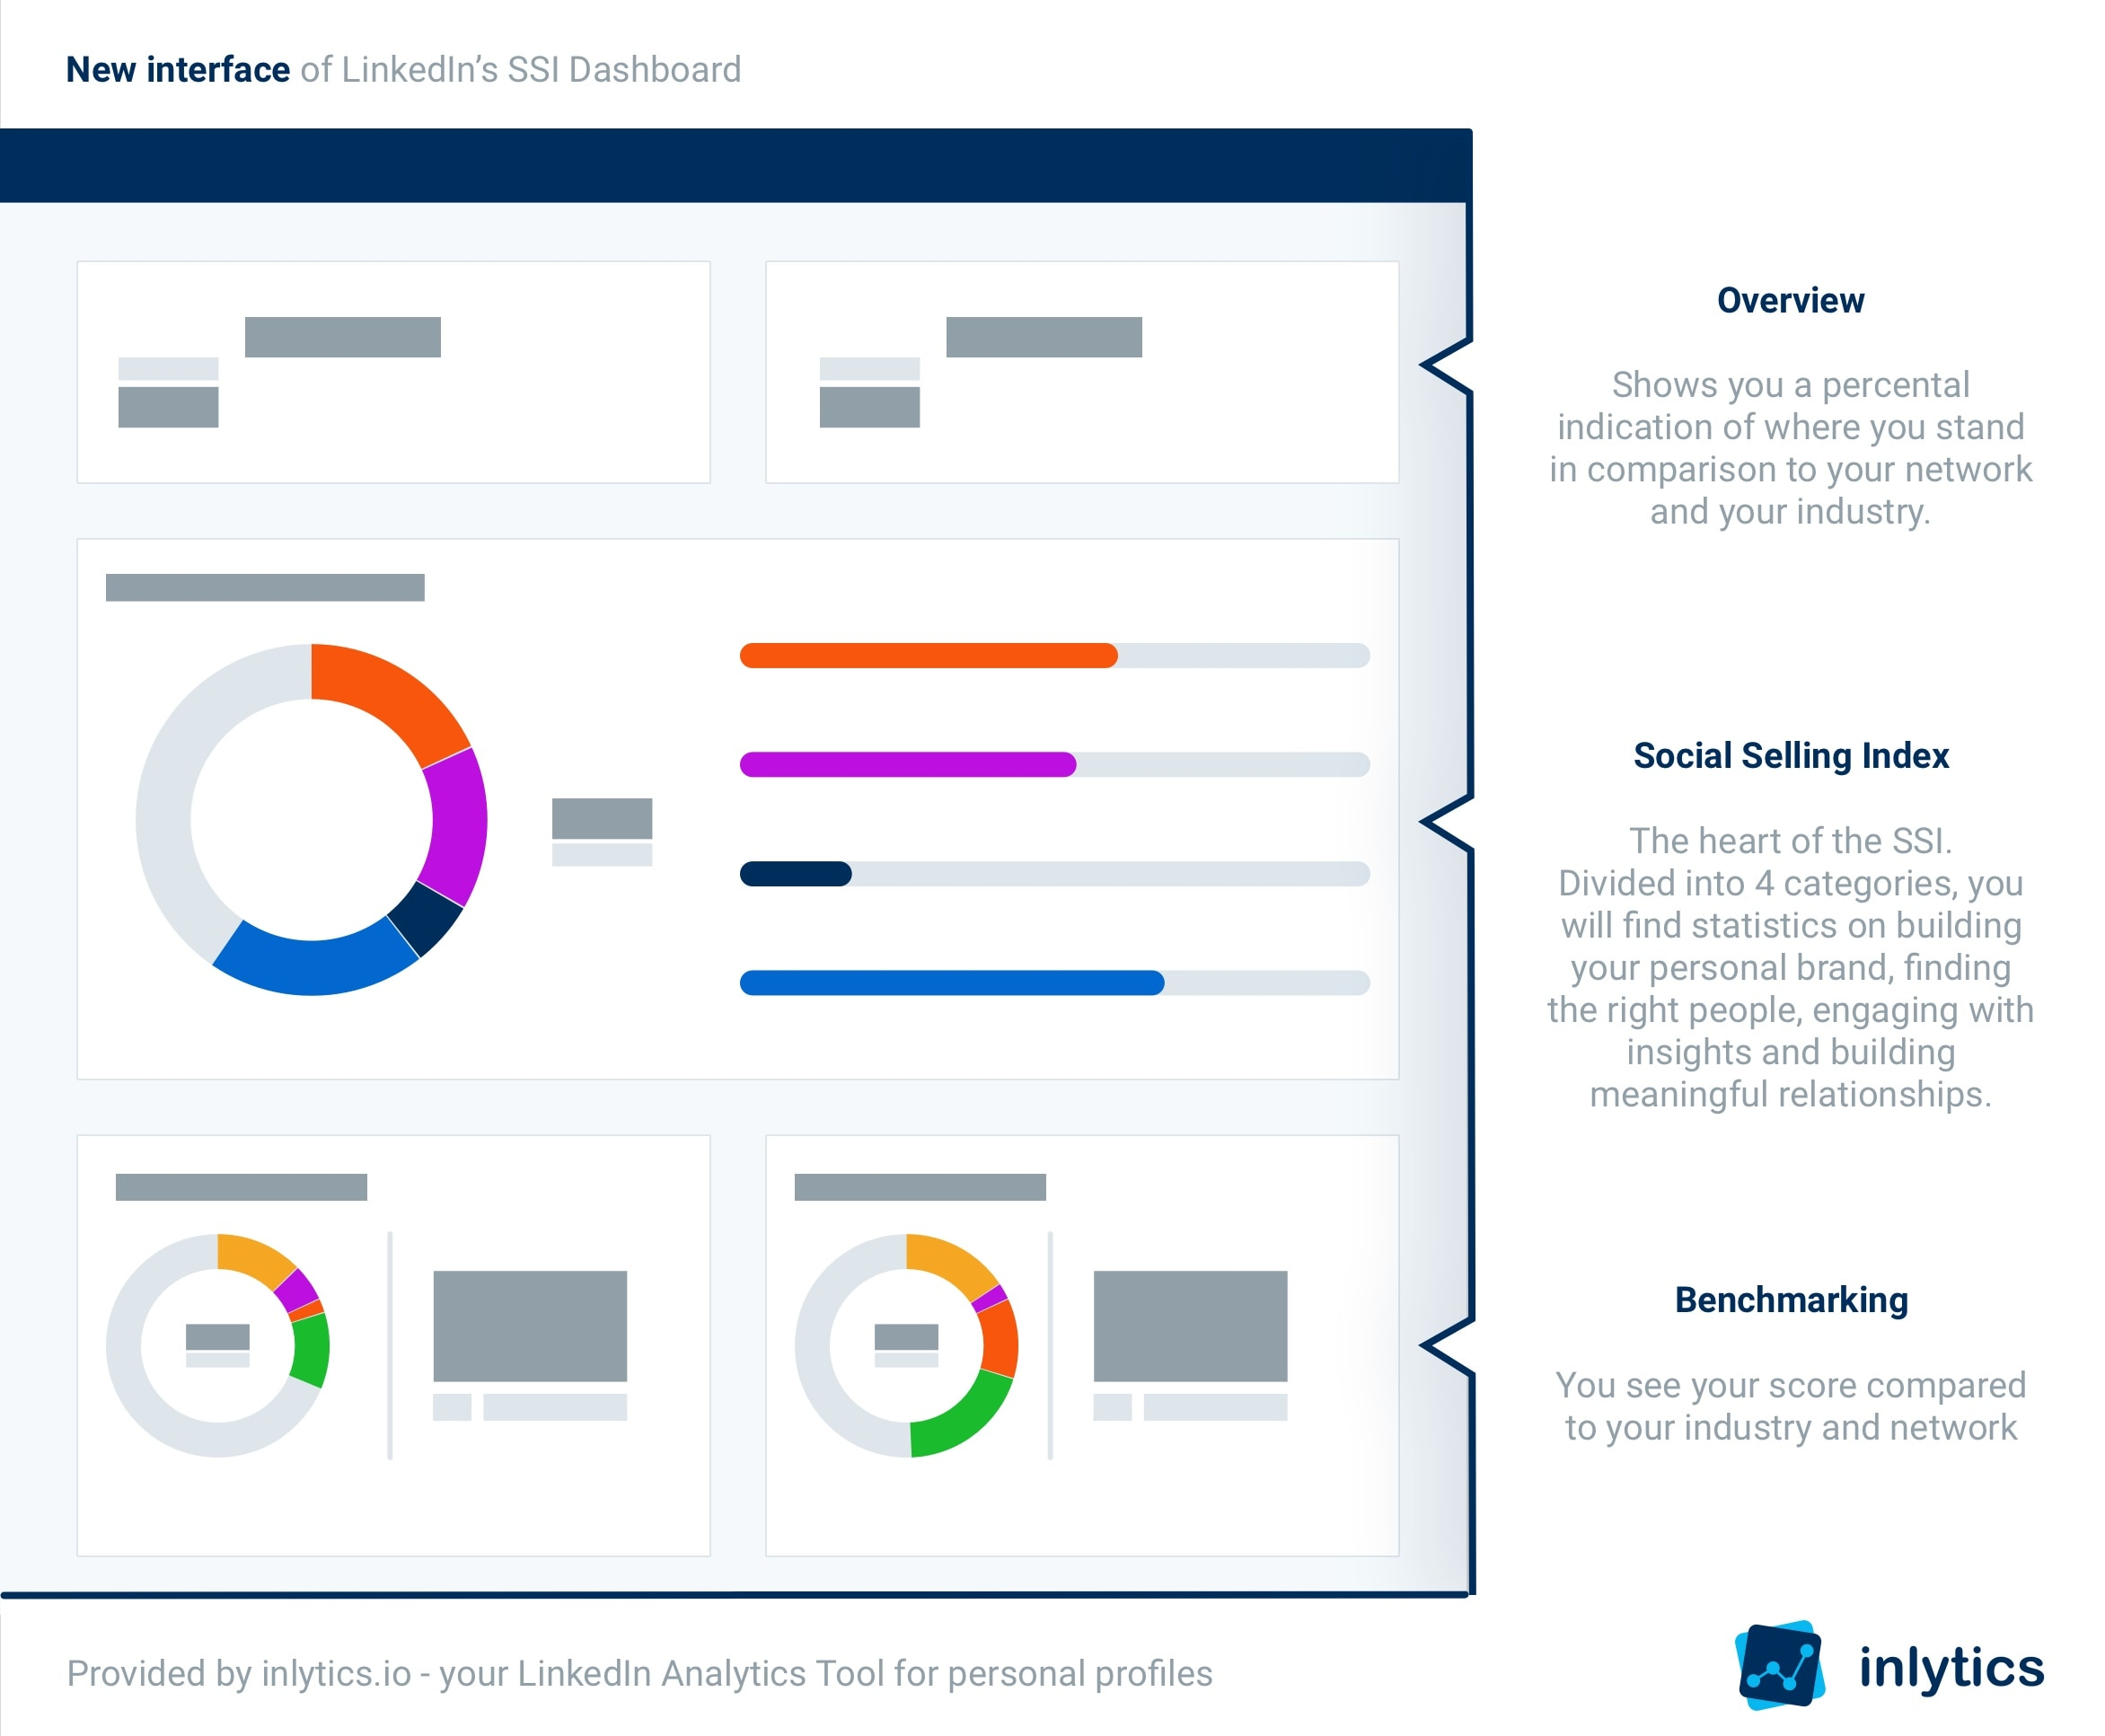 LinkedIns SSI Interface infographic updated UI 2020